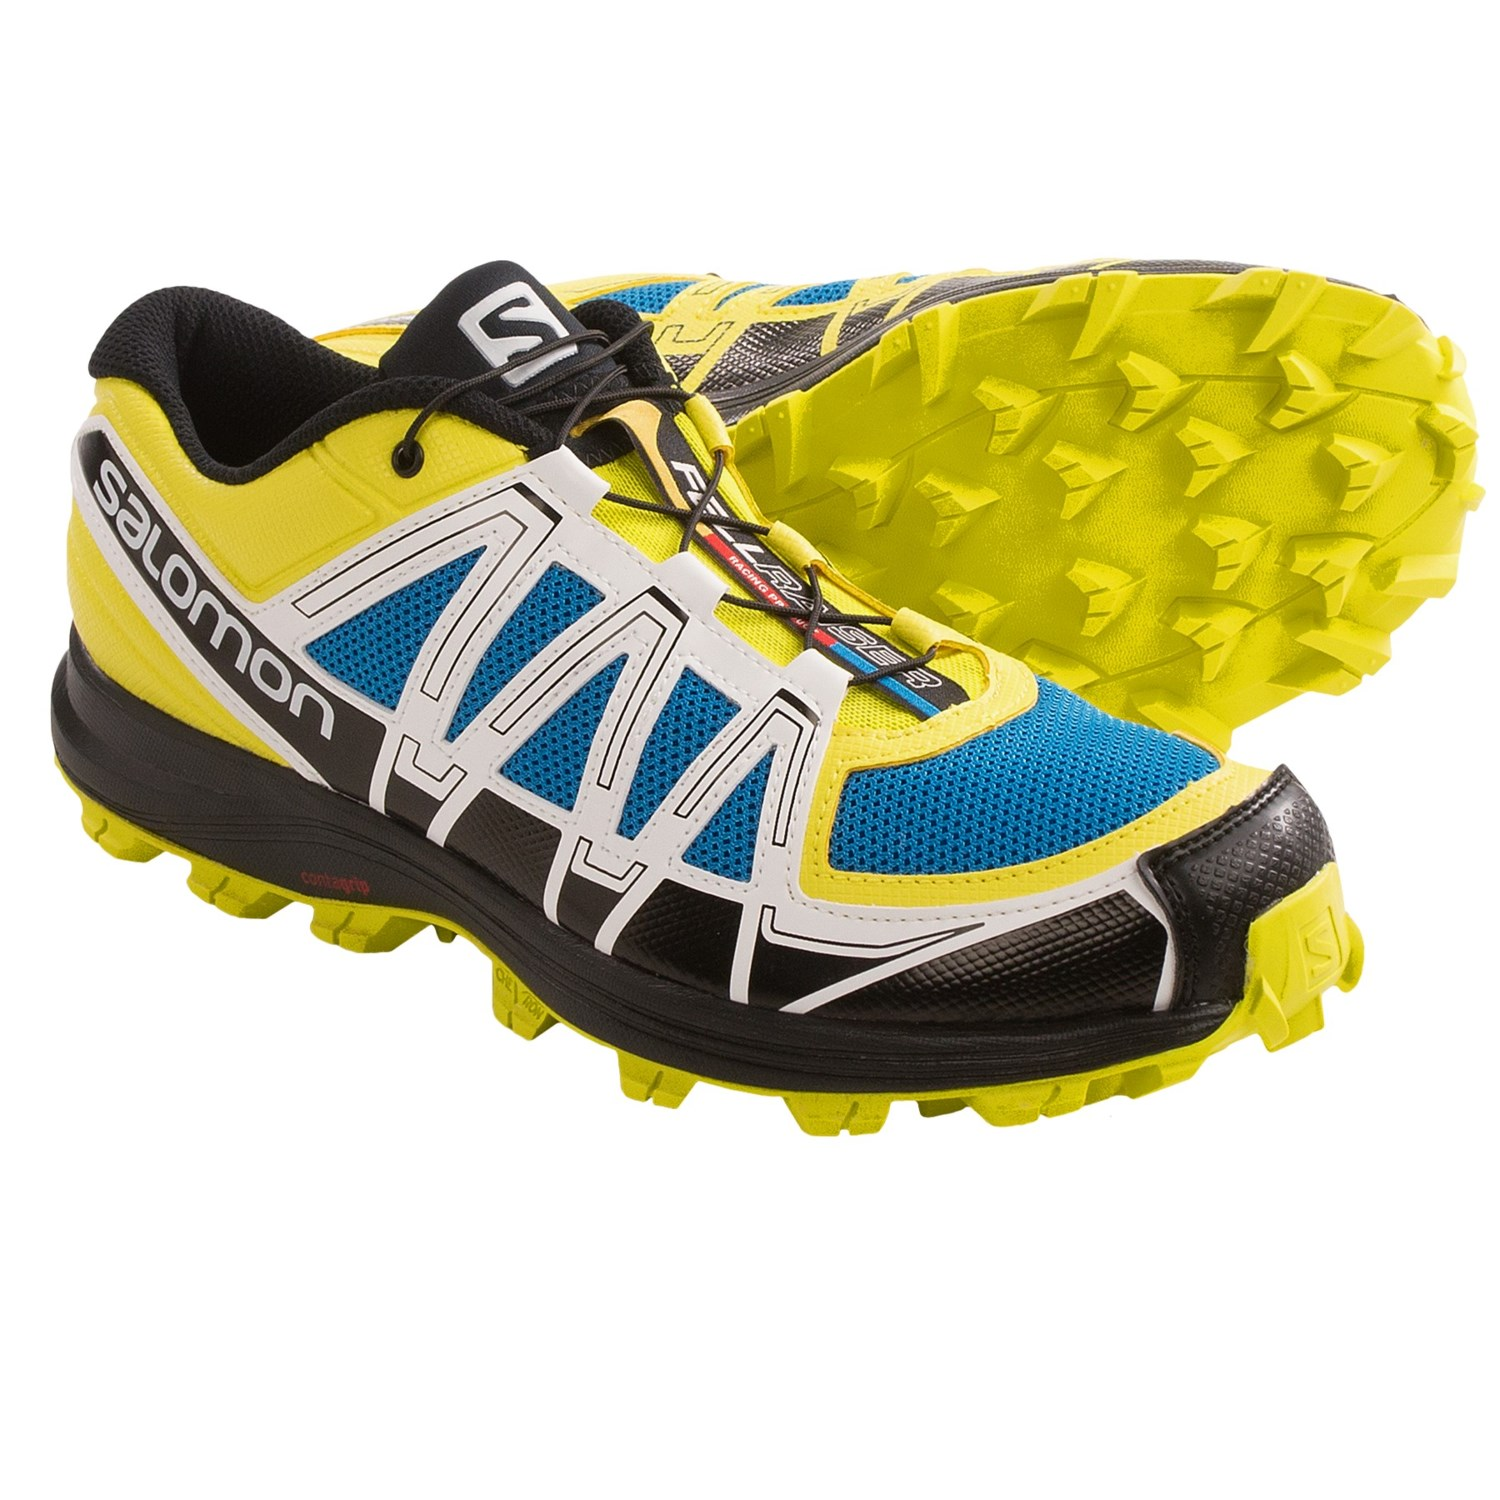 Coupon Code For Mens Salomon Fell Raiser - Salomon Fellraiser Trail Running Shoes For Men~p~7595x